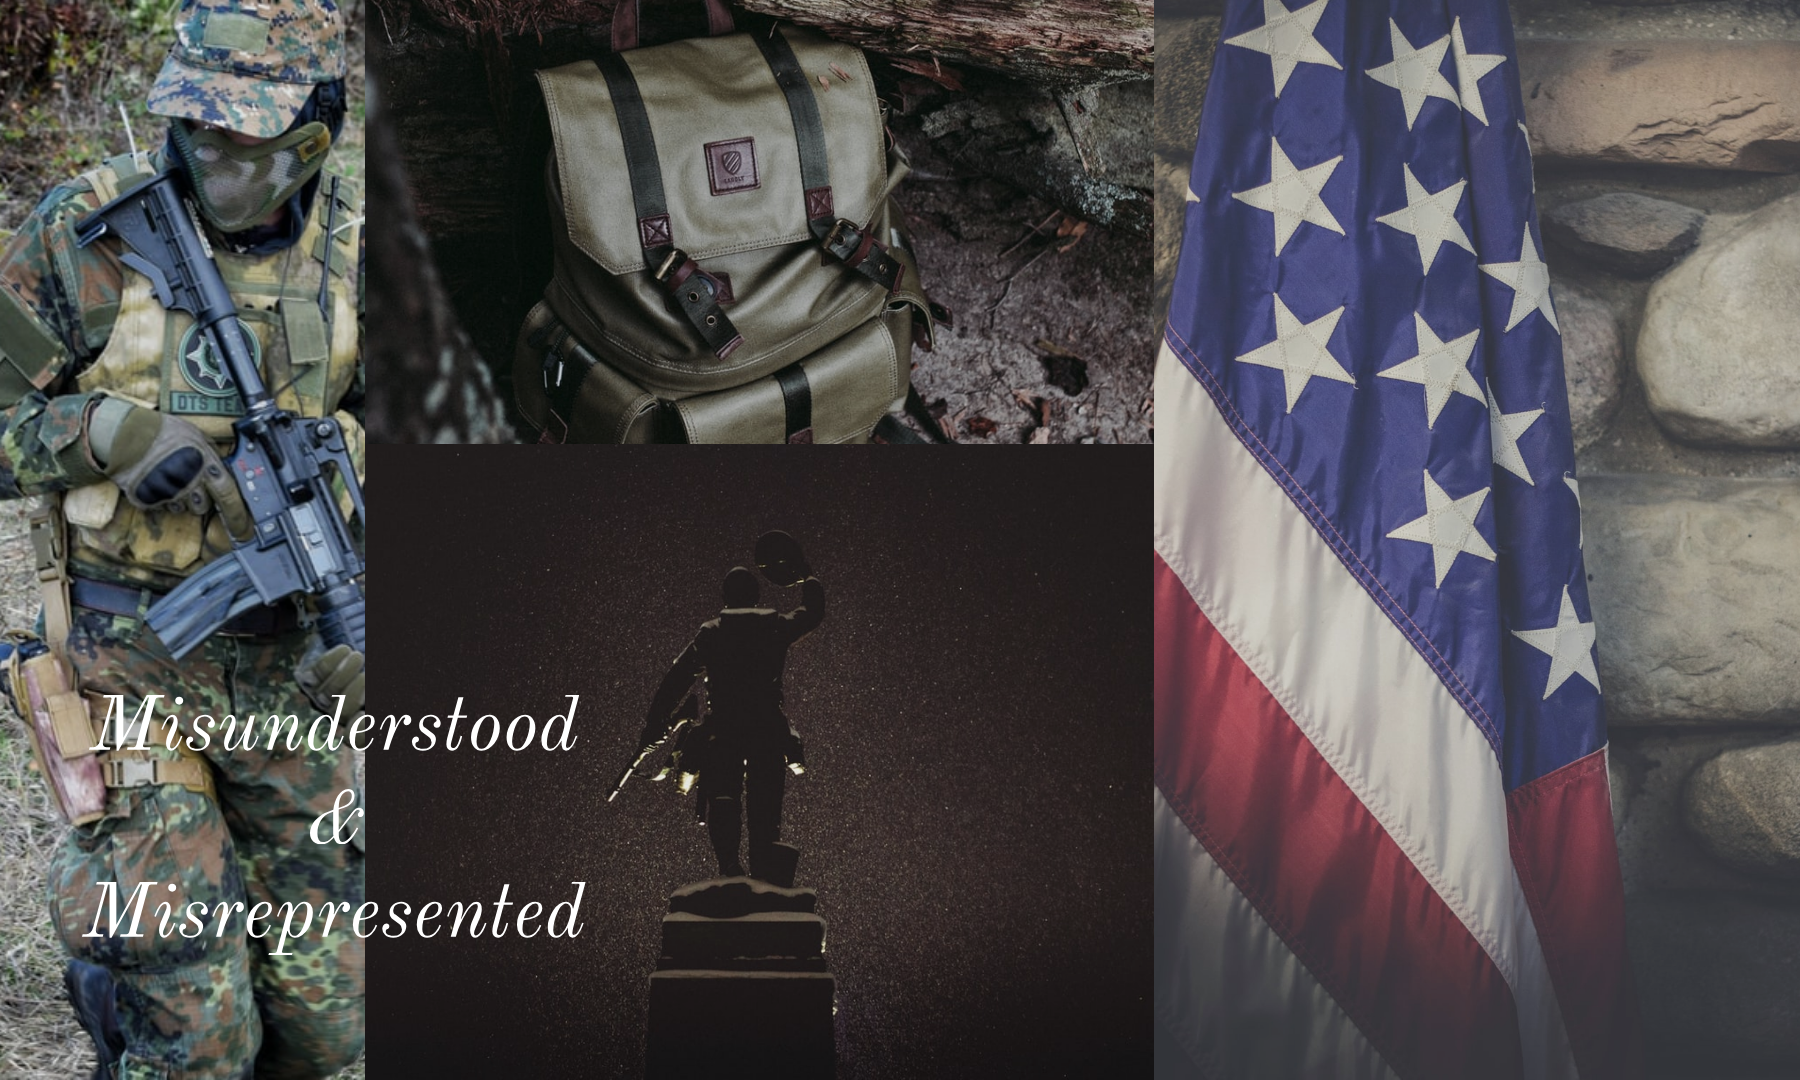 Soldiers-war-ptsd-backpack-american-flag-text-misunderstood-misrepresented